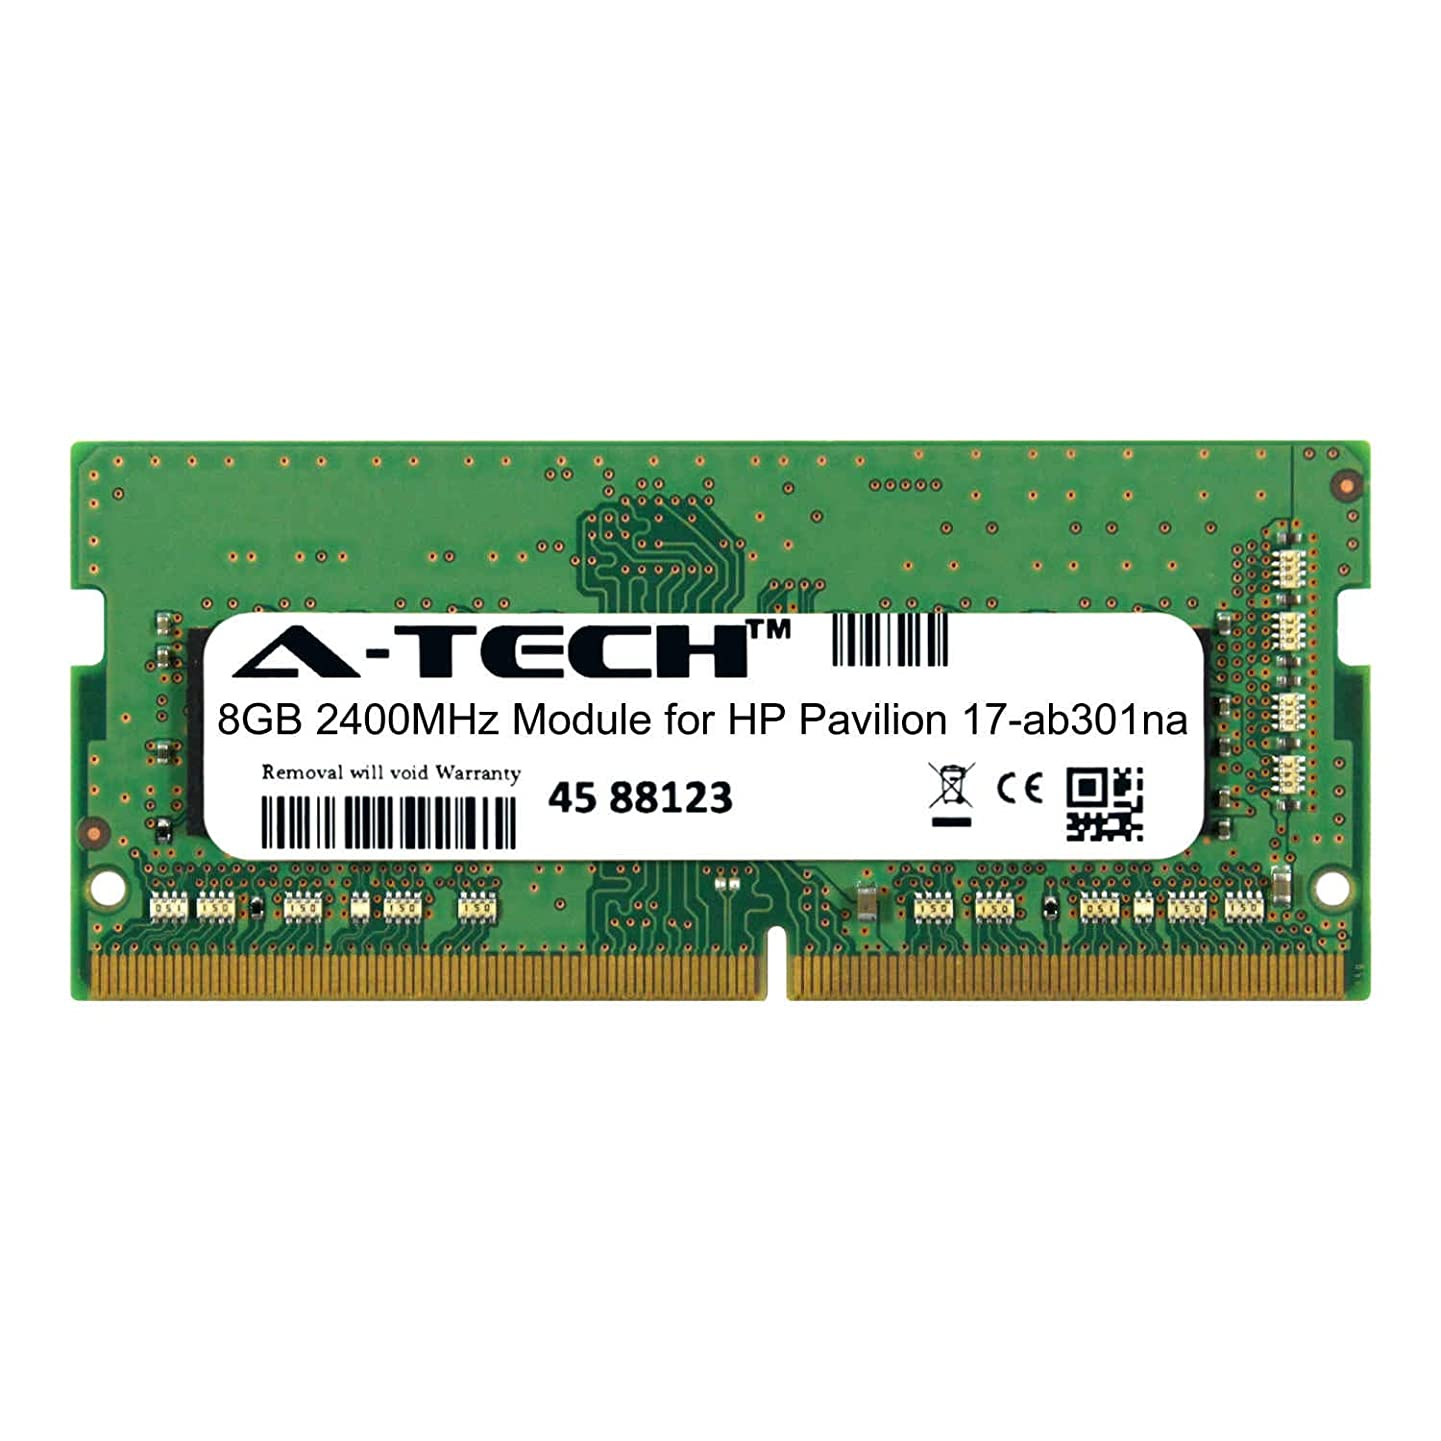 A-Tech 8GB Module for HP Pavilion 17-ab301na Laptop & Notebook Compatible DDR4 2400Mhz Memory Ram (ATMS310475A25827X1)